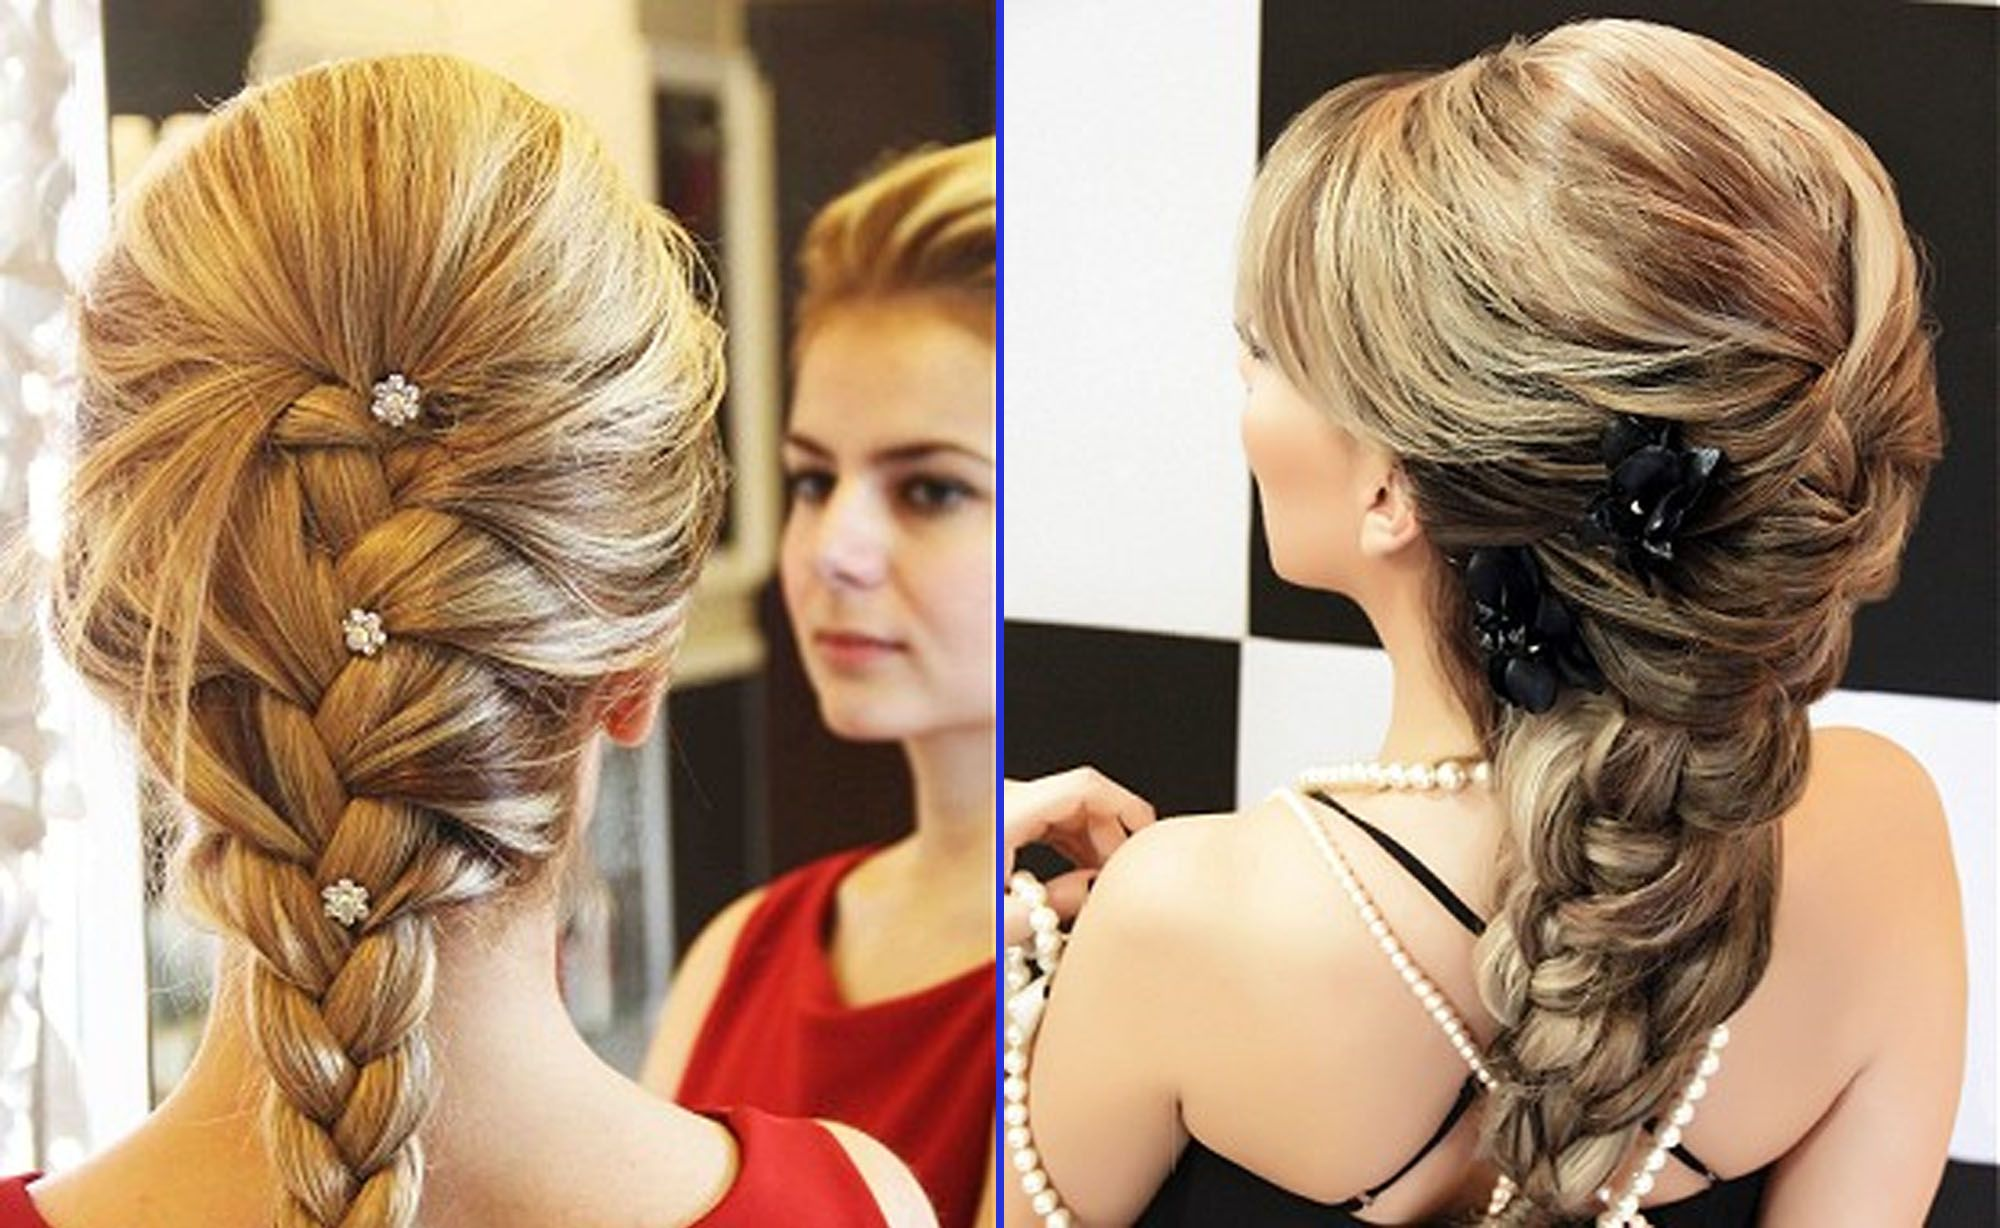 61 Braided Wedding Hairstyles: Hair Styling Is A Perfect Way To Get The Modified Look And